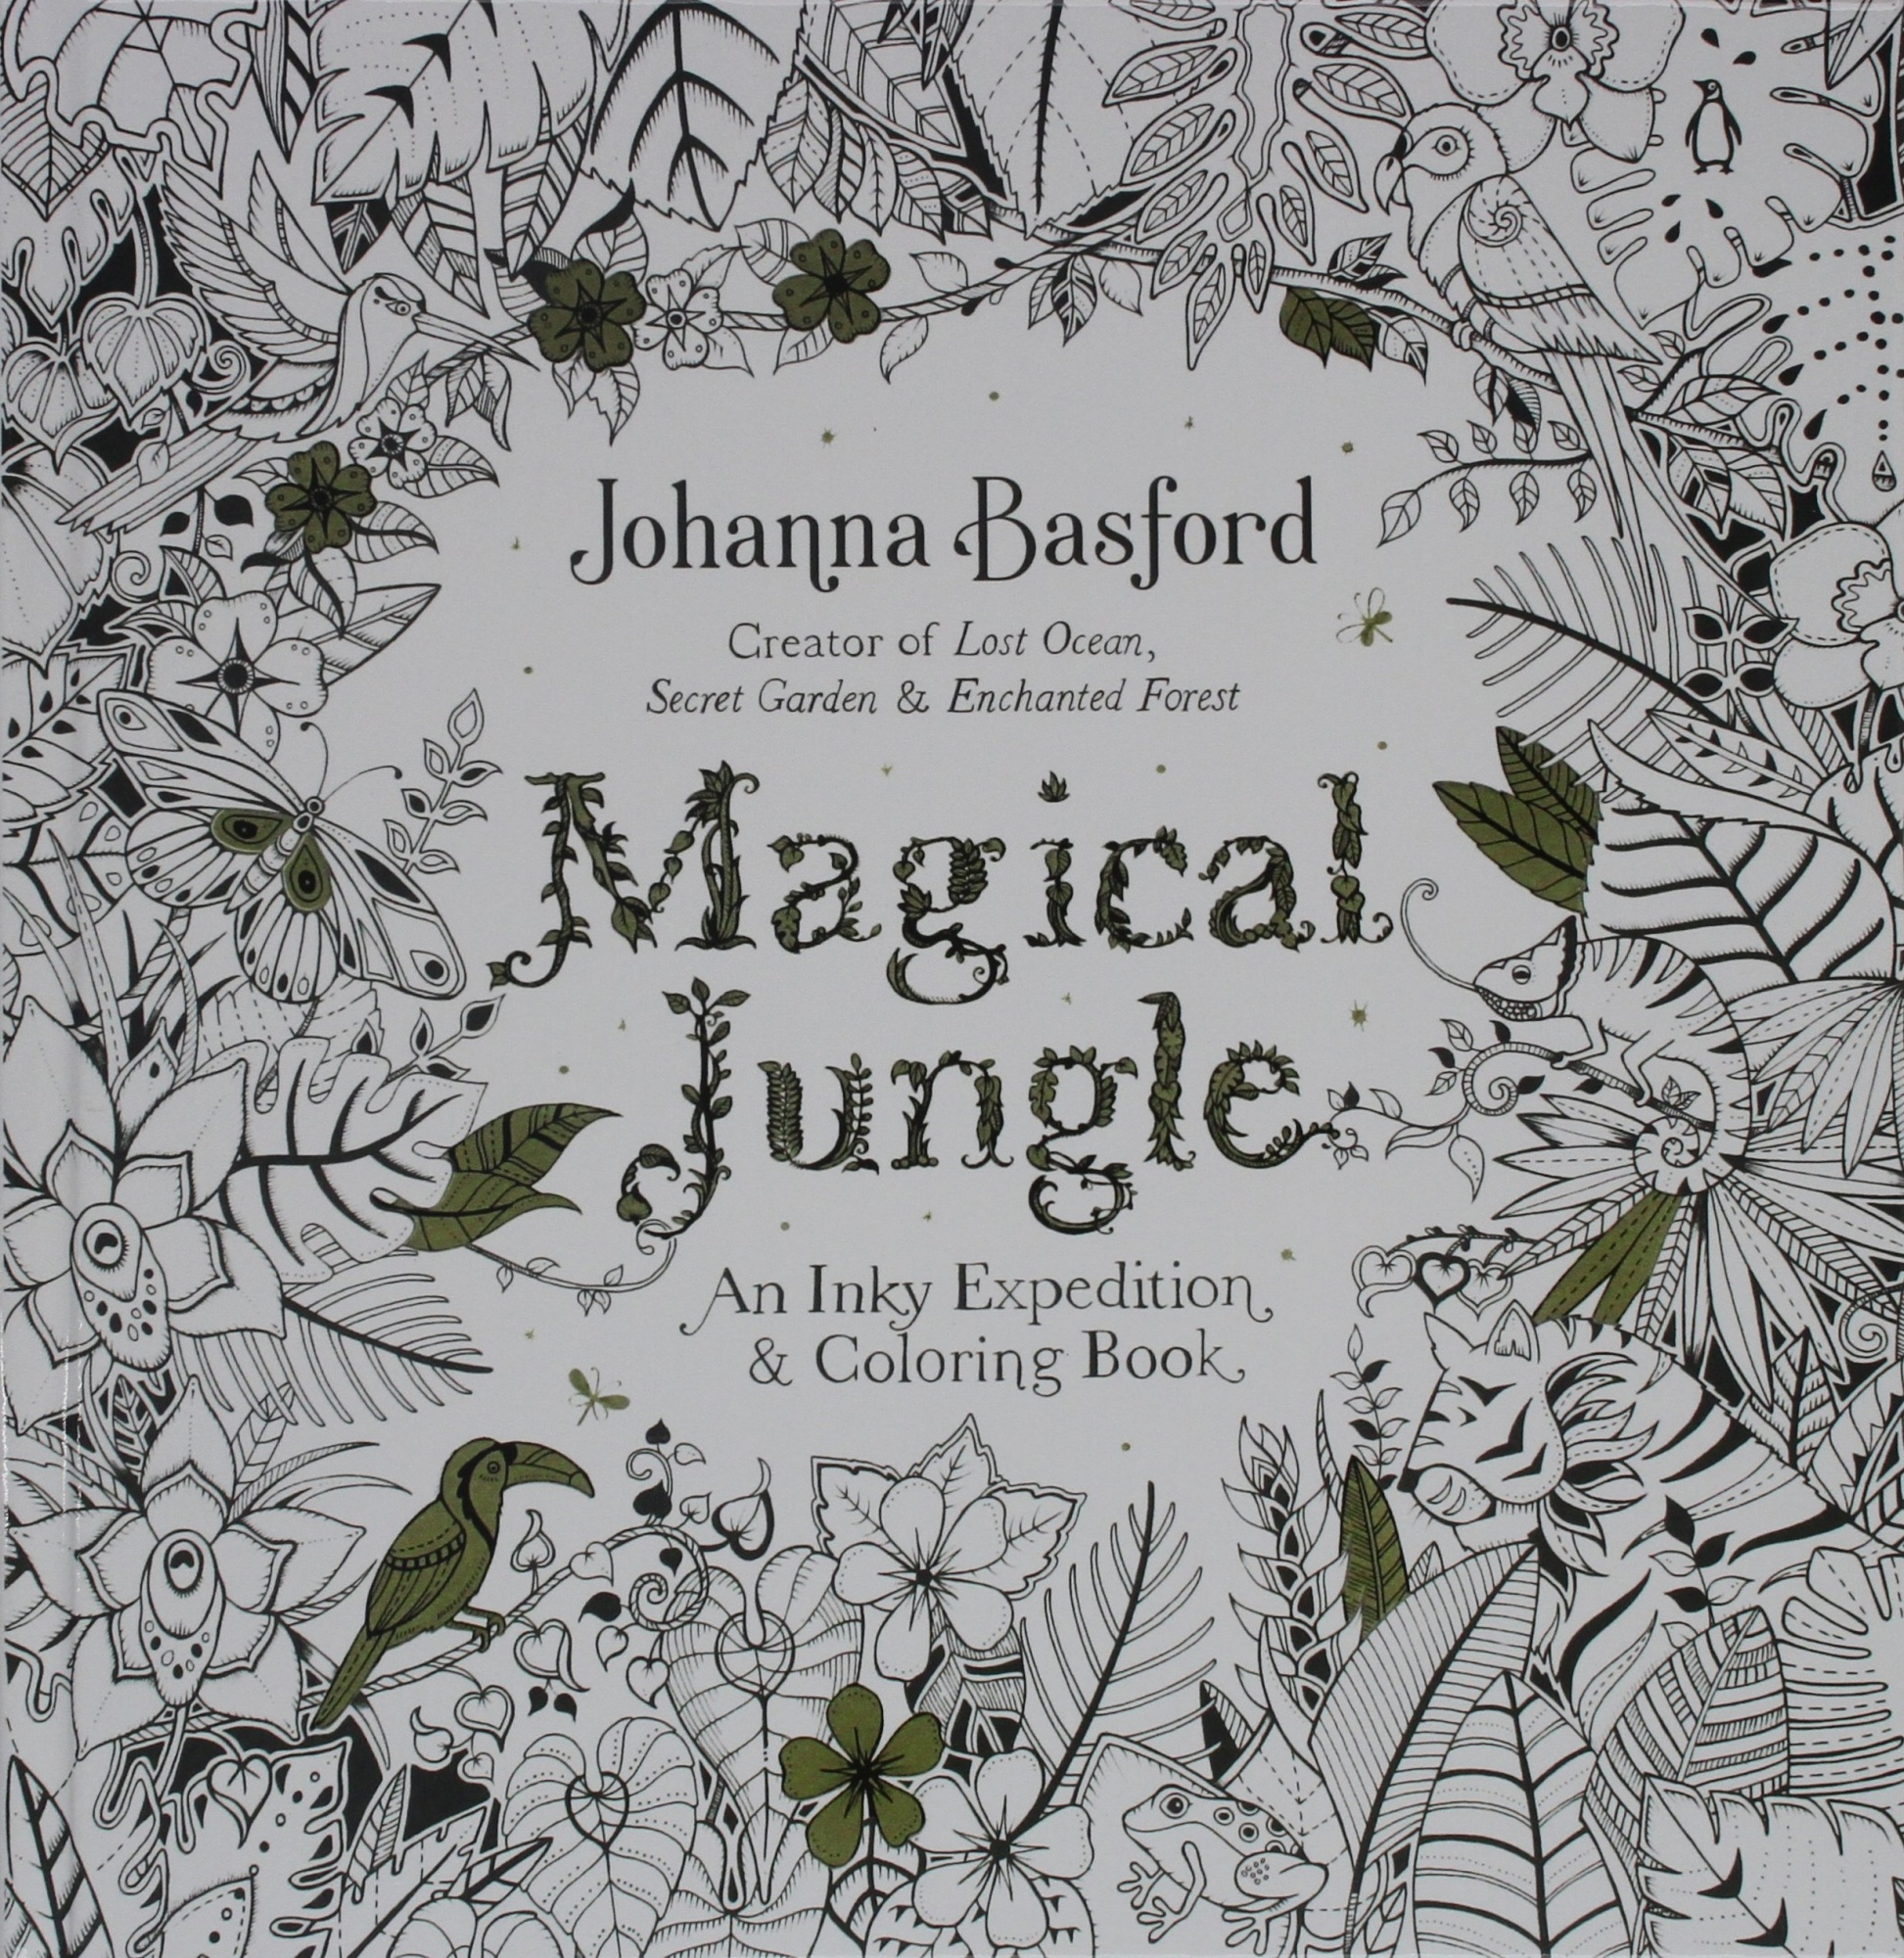 Magical JungleAn Inky Expedition and Coloring Book for Adults by Johanna Basford, ISBN: 9780606395663